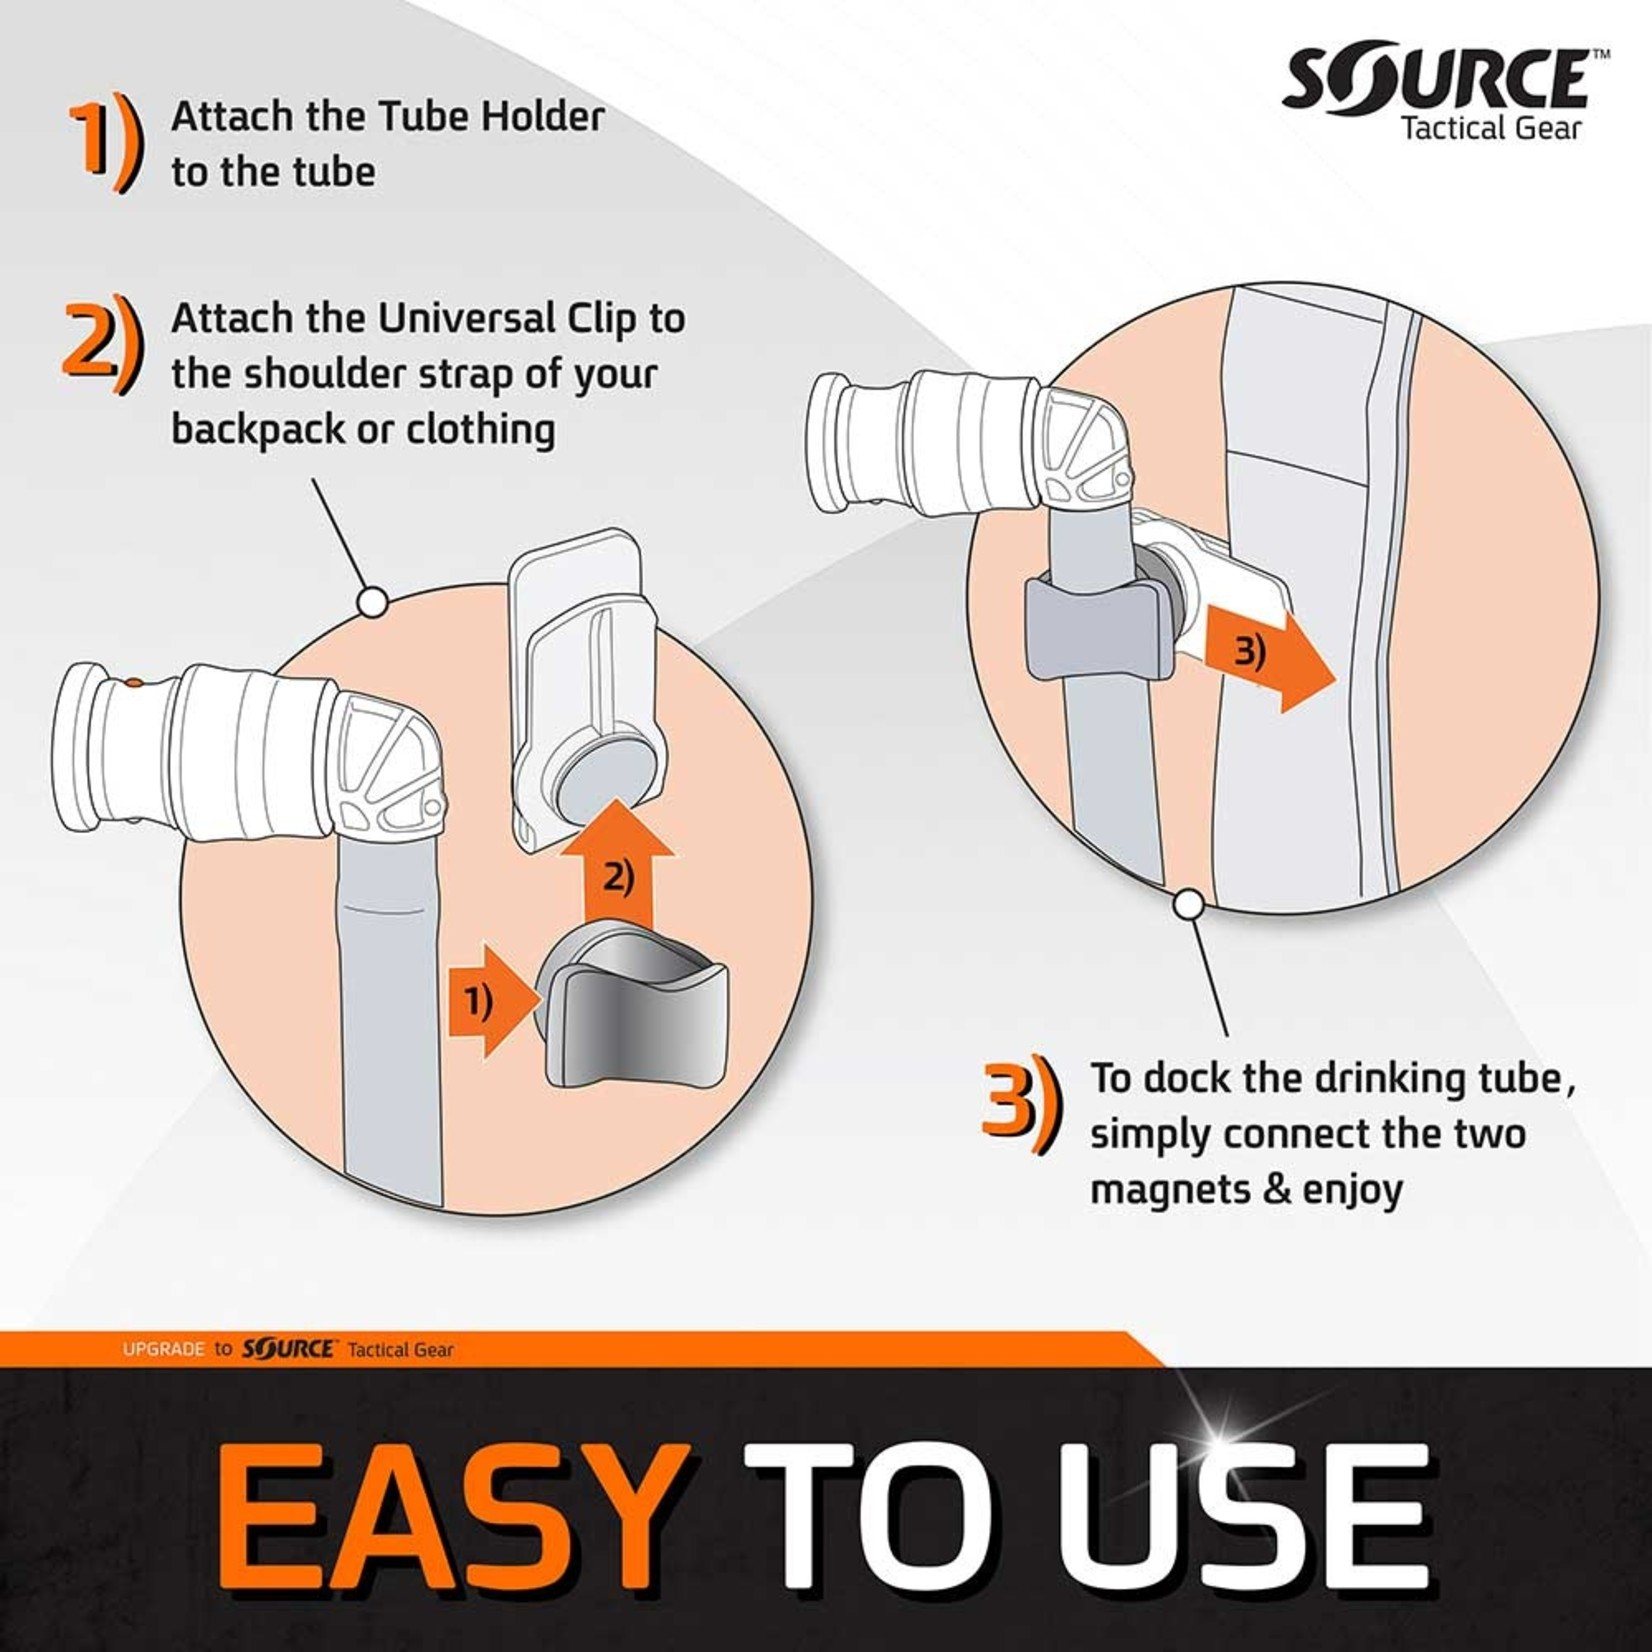 SOURCE TACTICAL GEAR ULTIMATE SOURE M.C. 3L HYDRATION SYSTEM